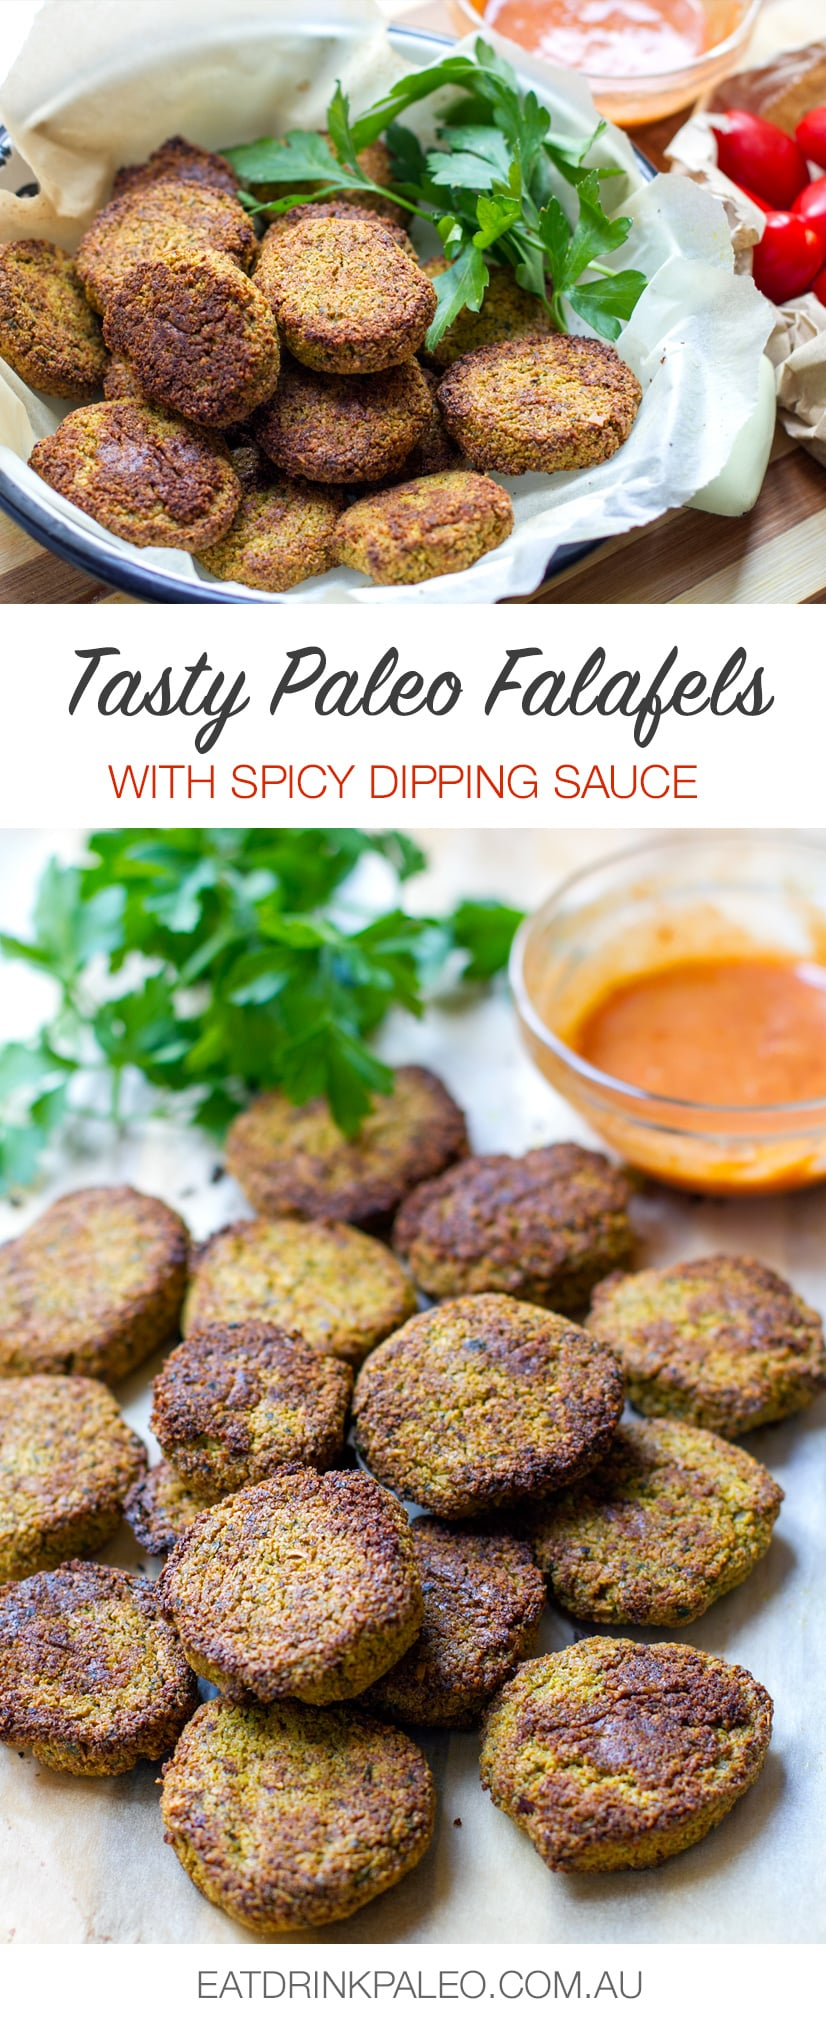 Paleo Falafels With Spicy Dipping Sauce